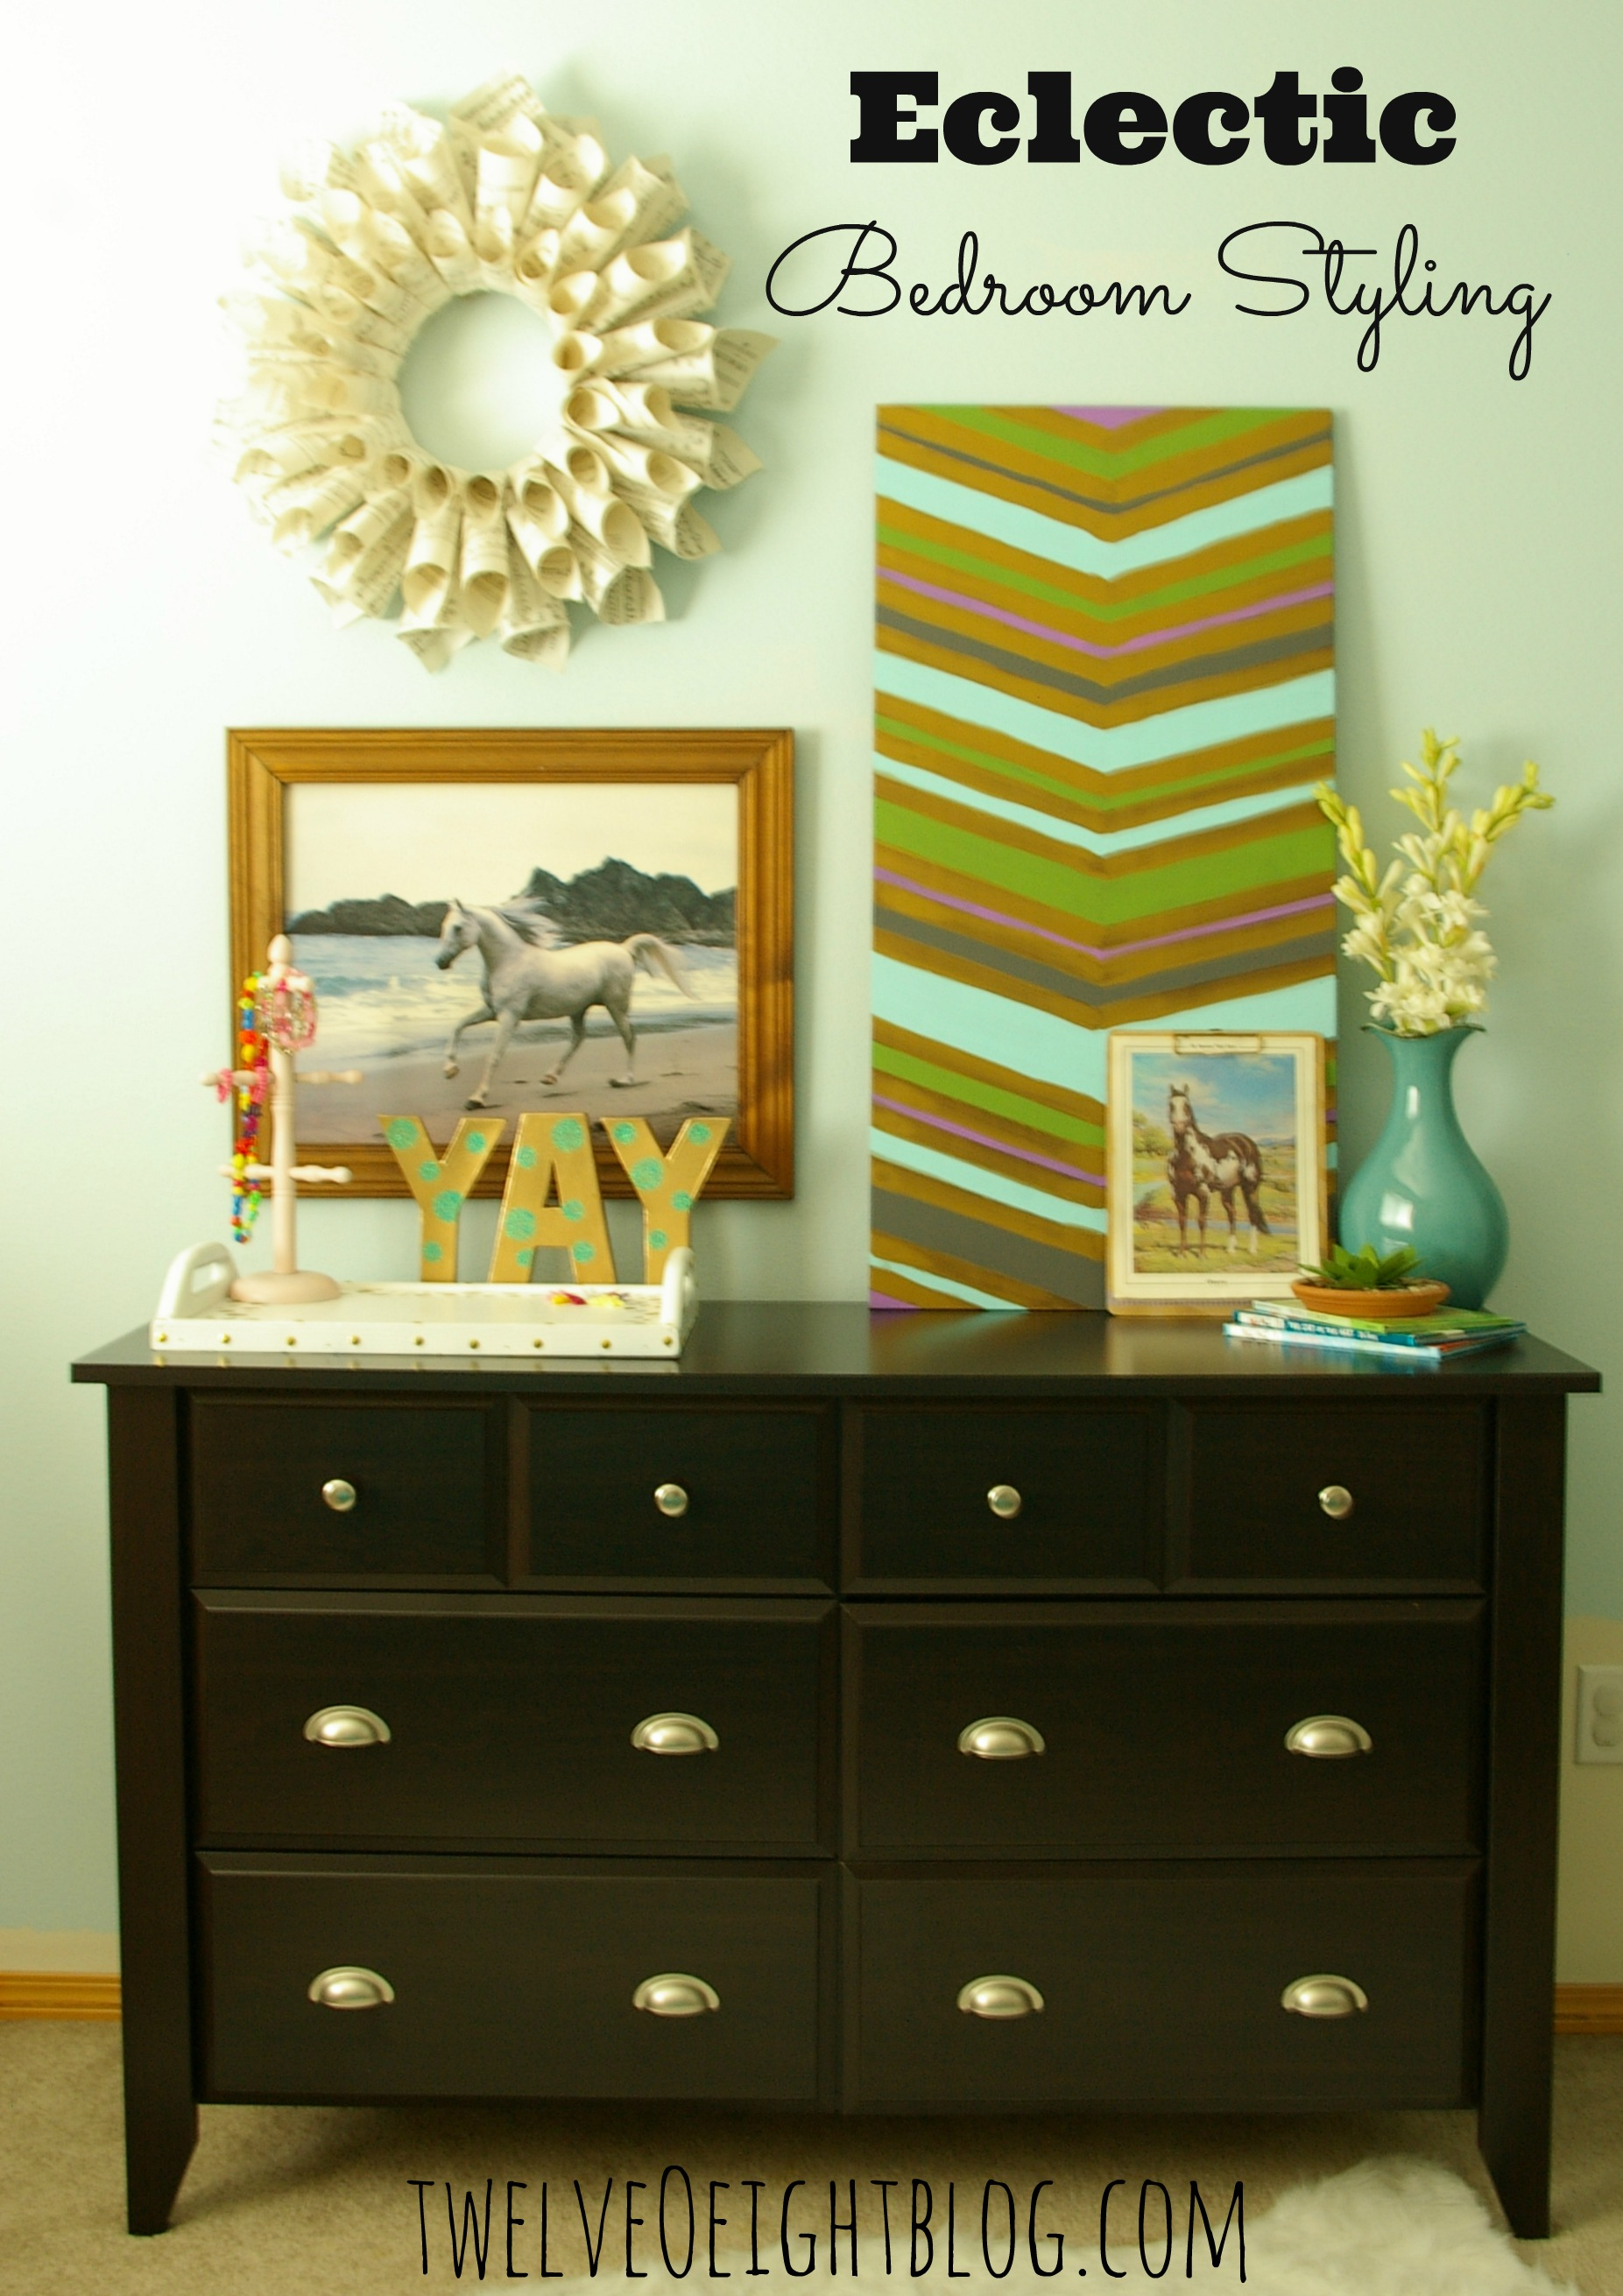 Eclectic bedroom styling a new dresser for Modern eclectic furniture